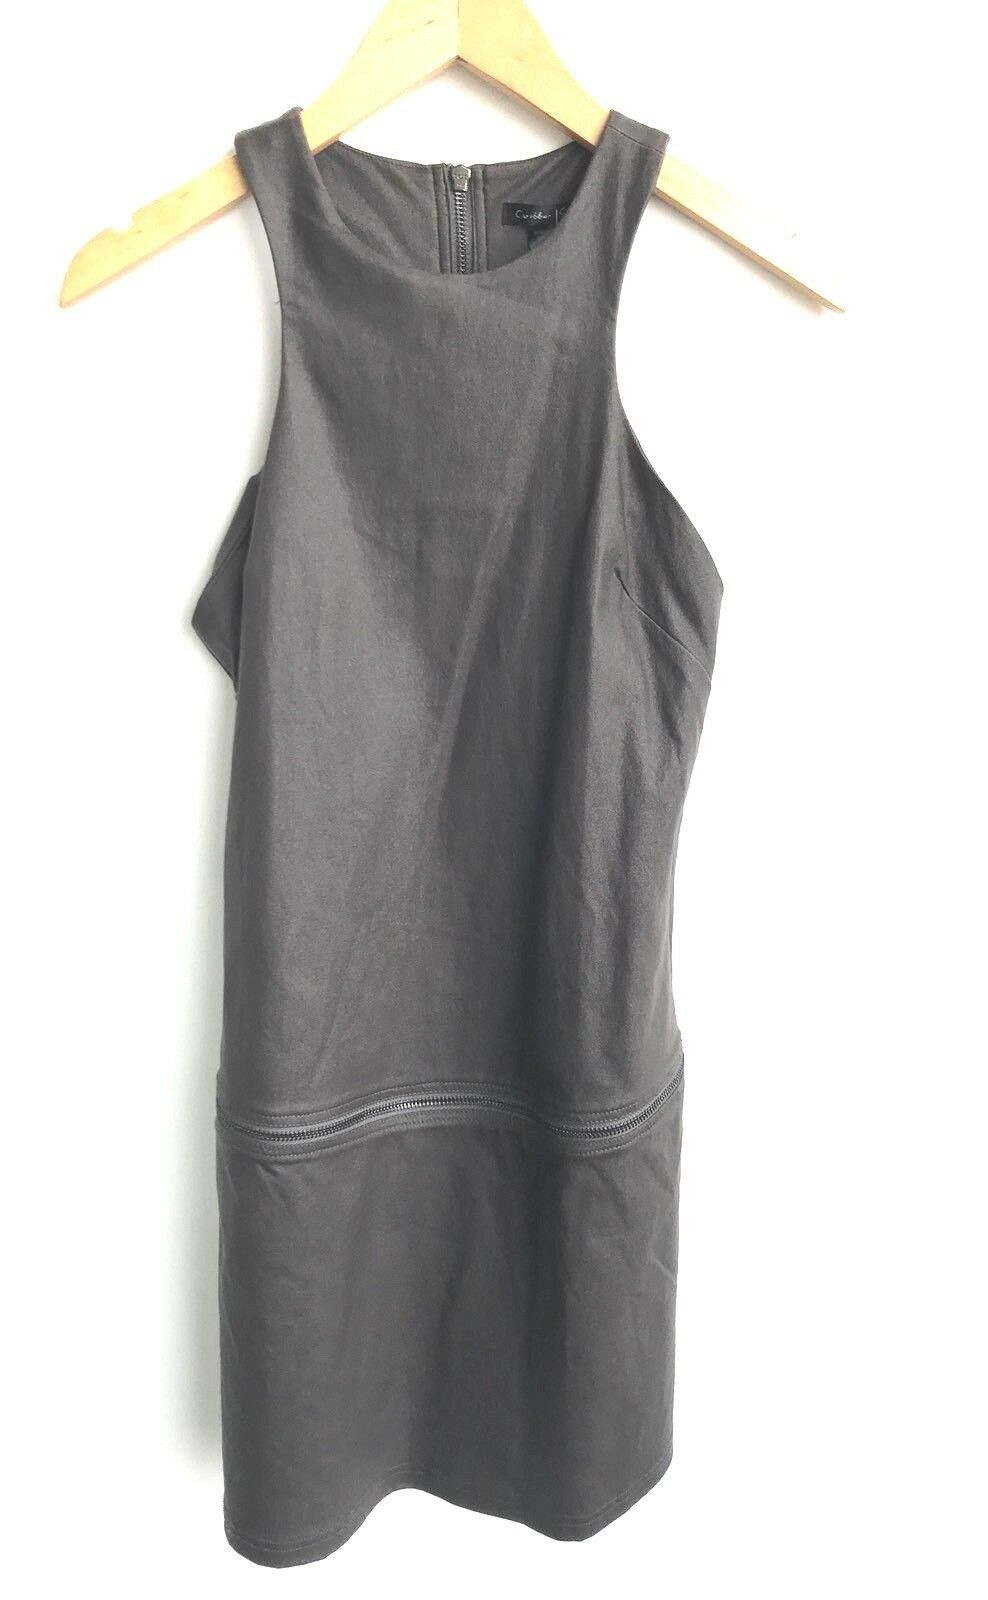 NWT Caribbean Queen Size Small Charcoal Grey Dress